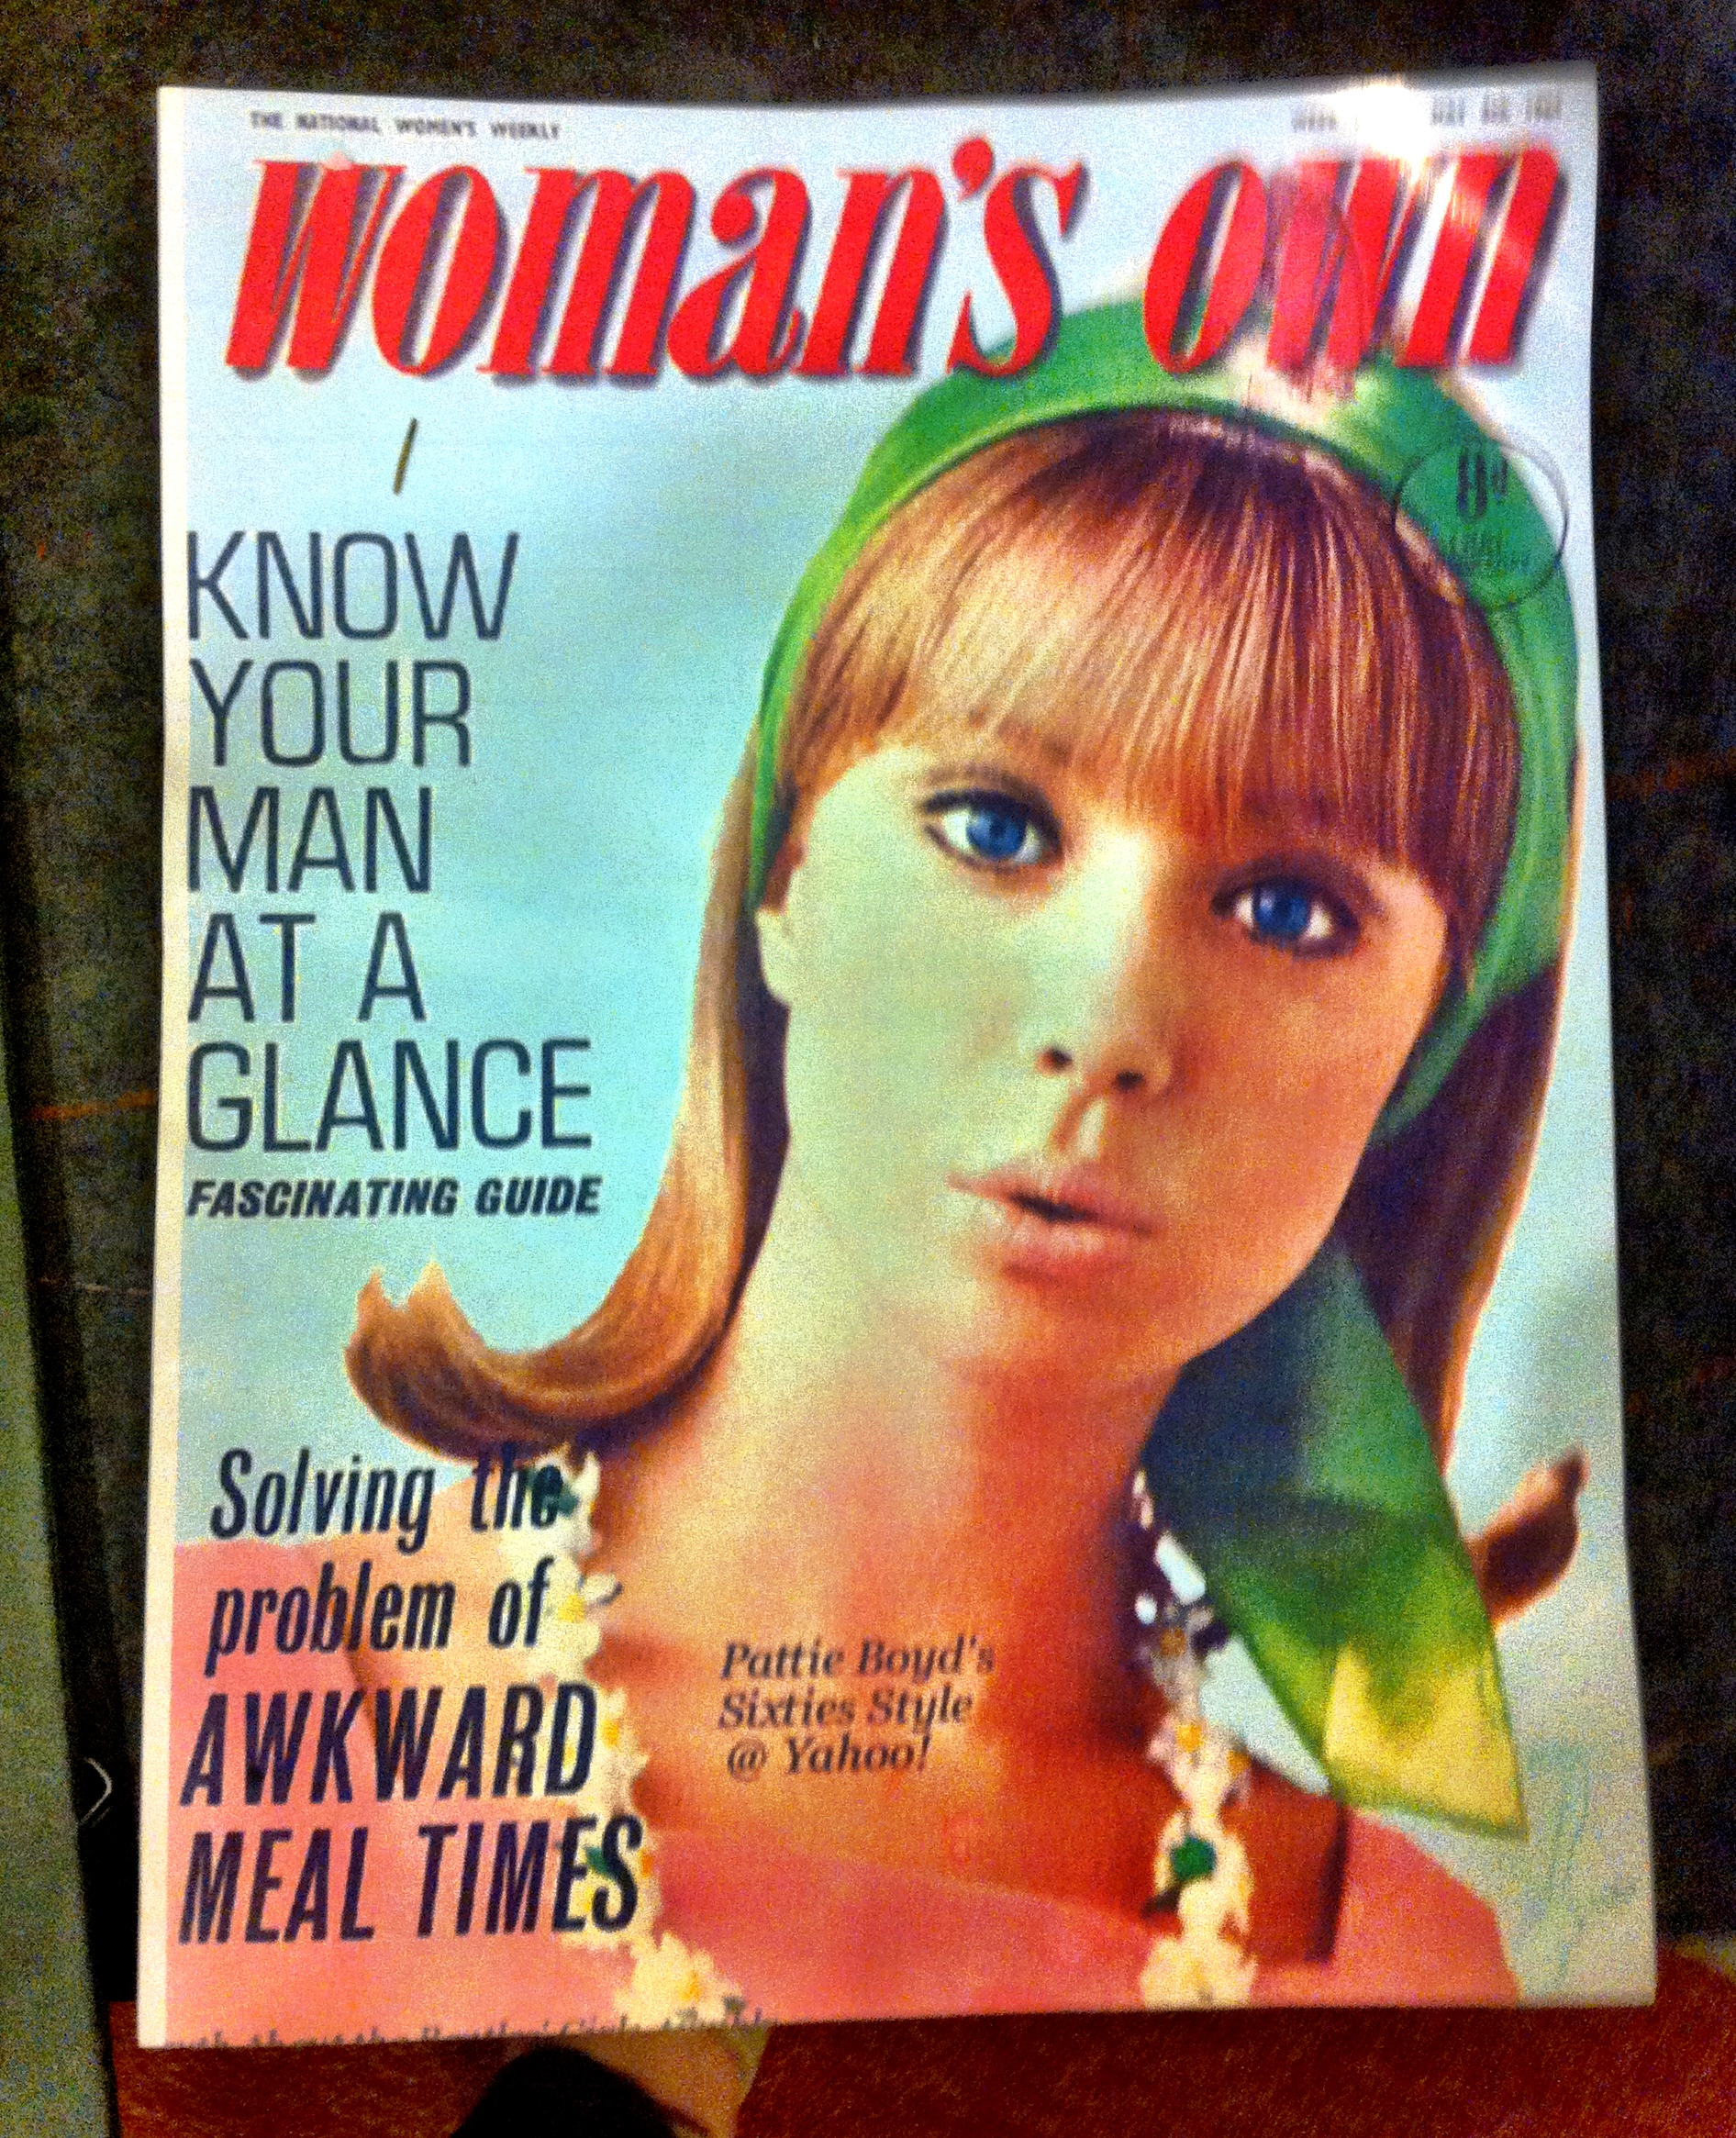 Women magazine (around 1960)